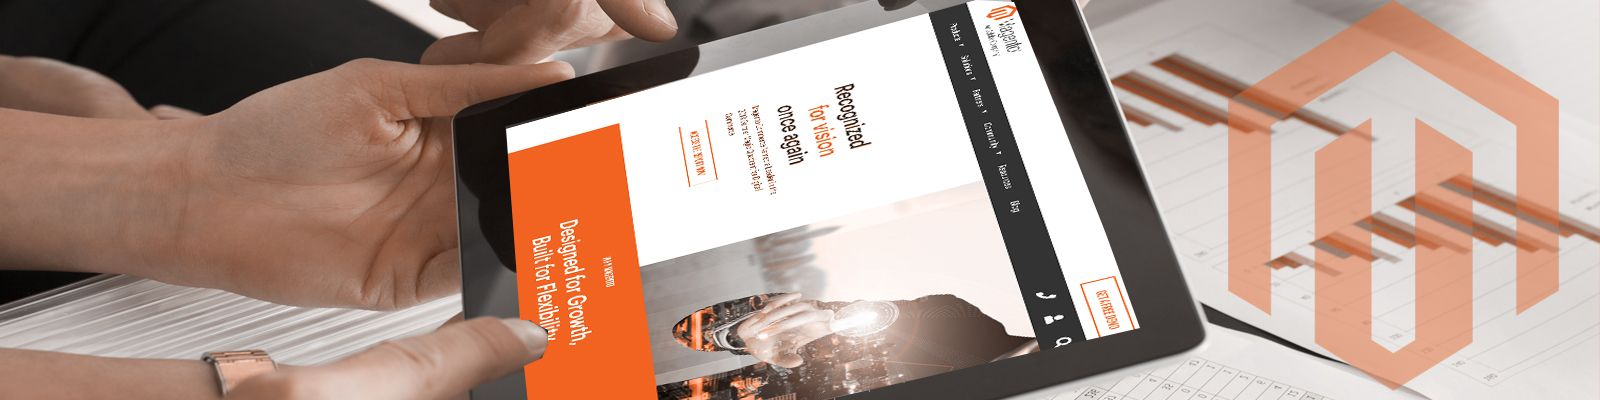 Closeup banner image of a Magento professional working on a tablet